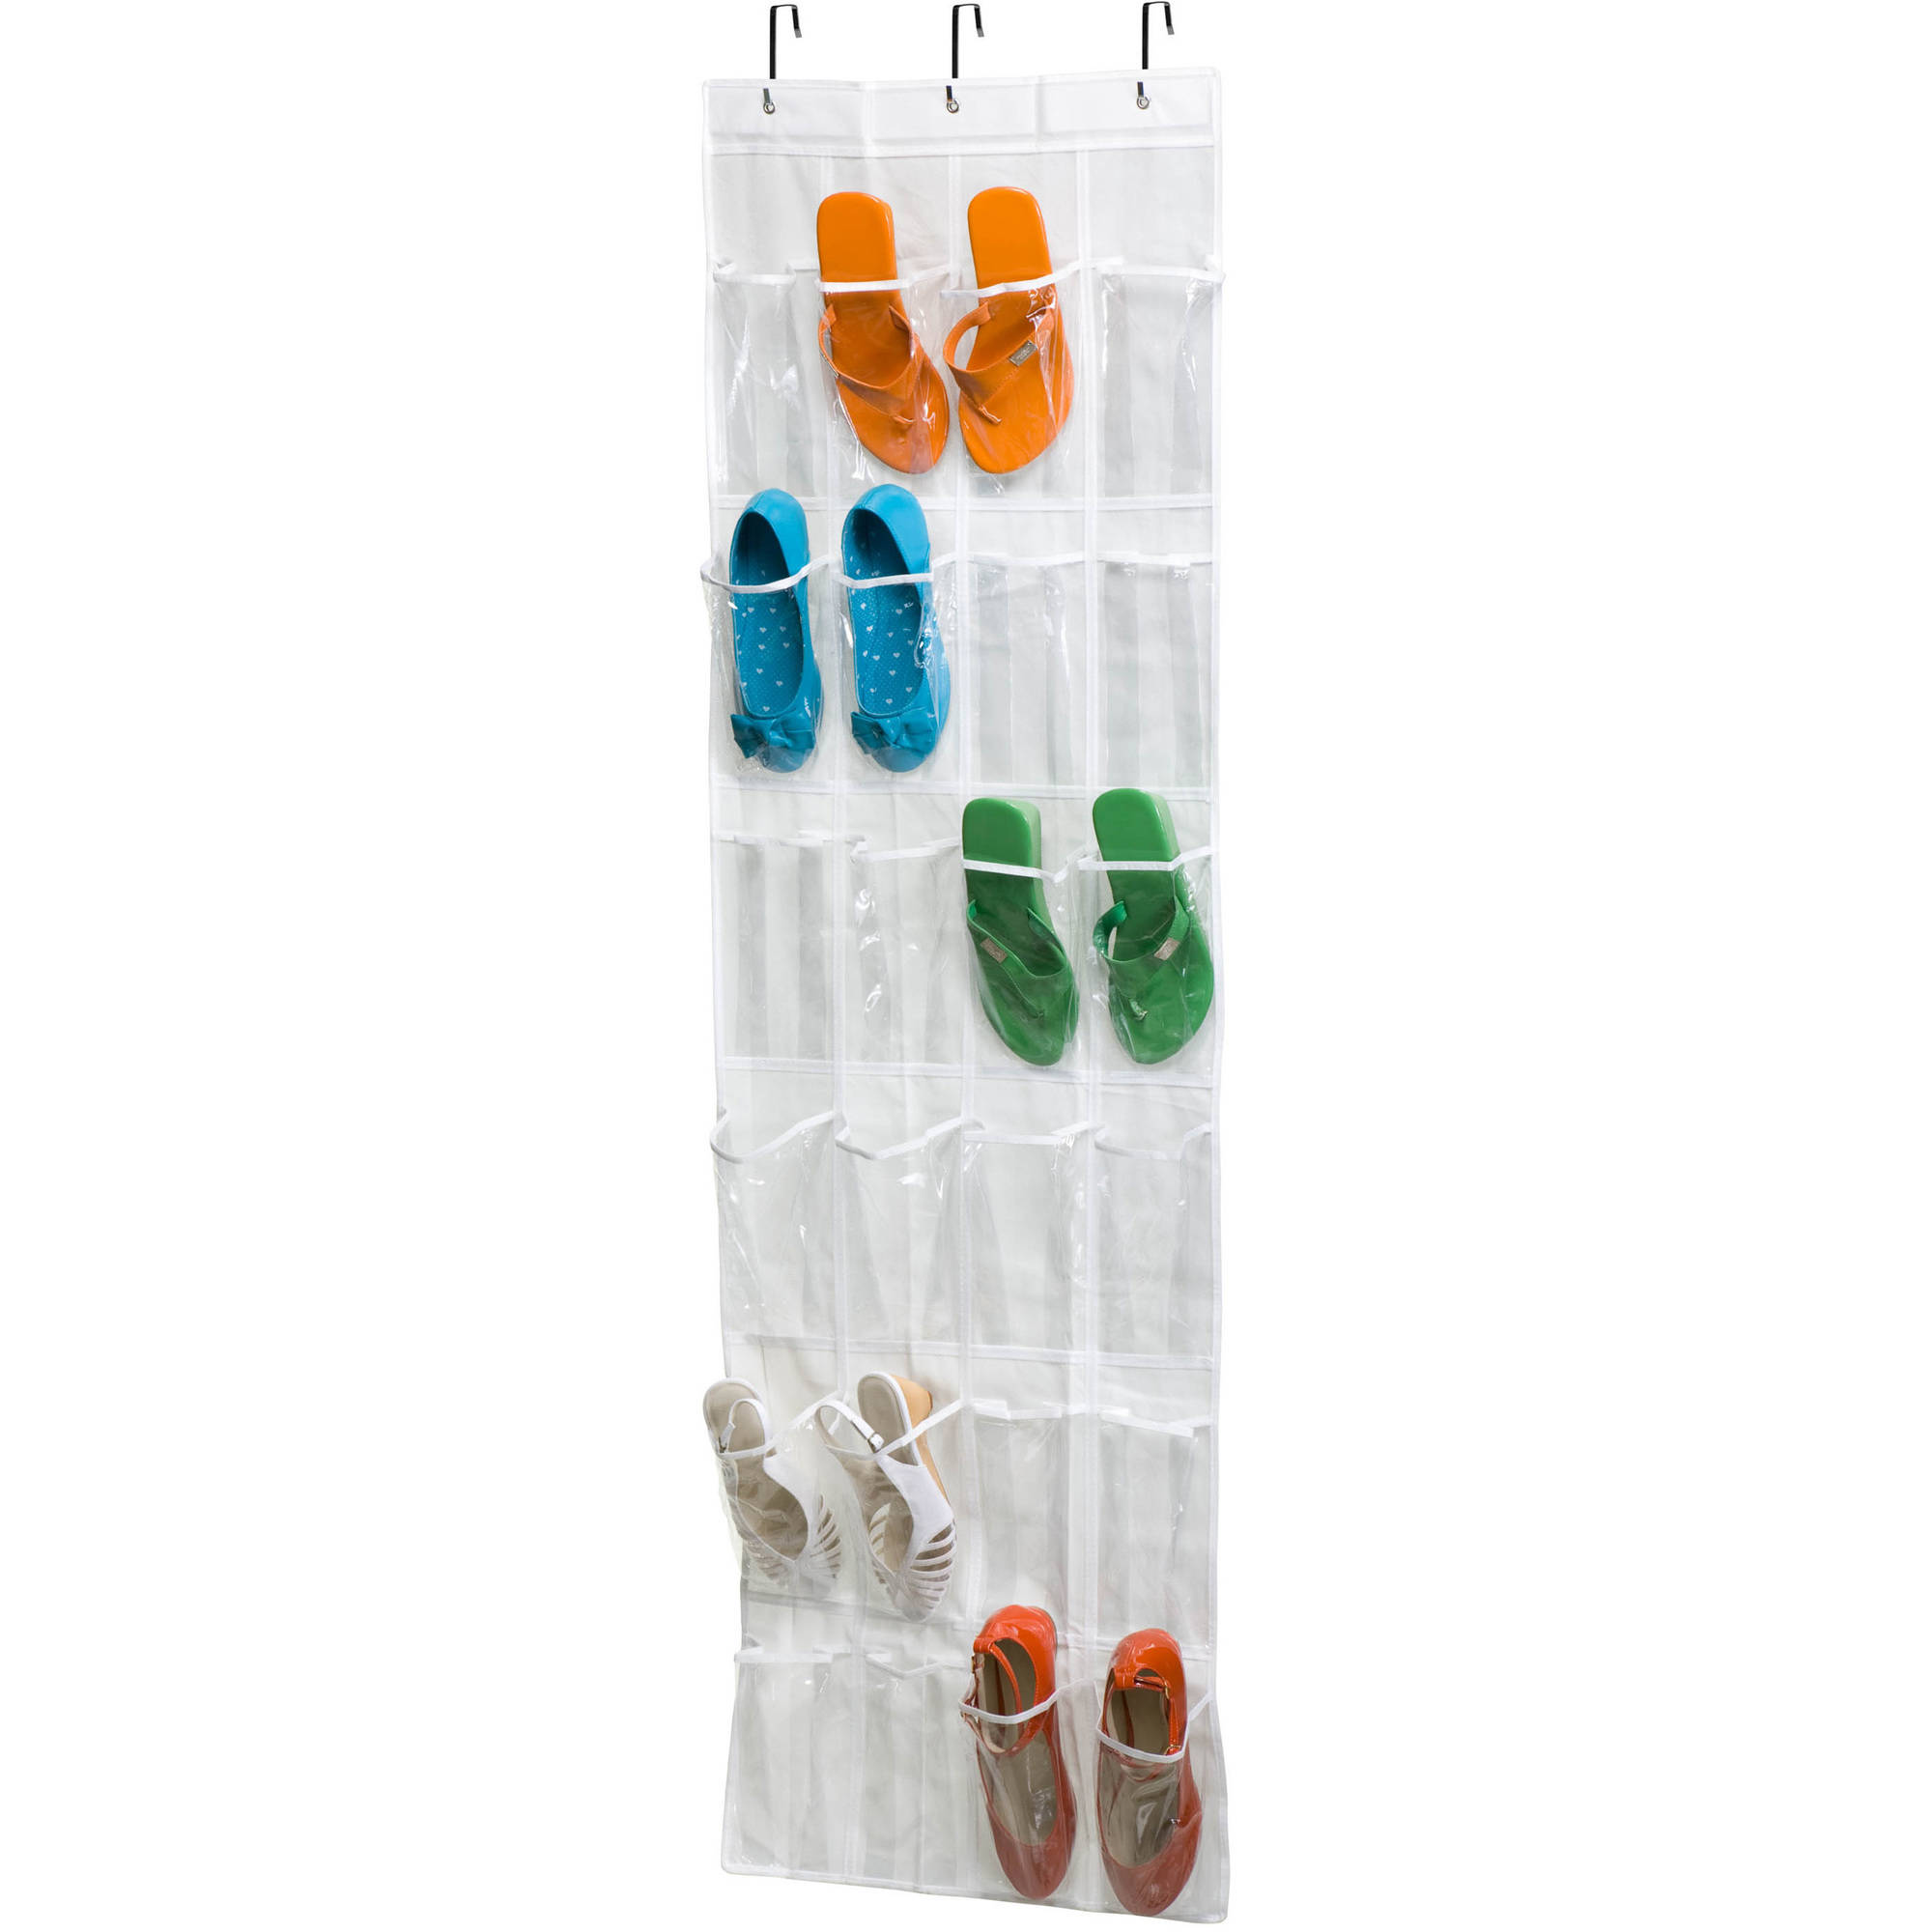 Shoe Rack Target with Unique Design and Elegant Appearance: Shoe Rack Target | Closet Organizer Target | Shoe Stacker